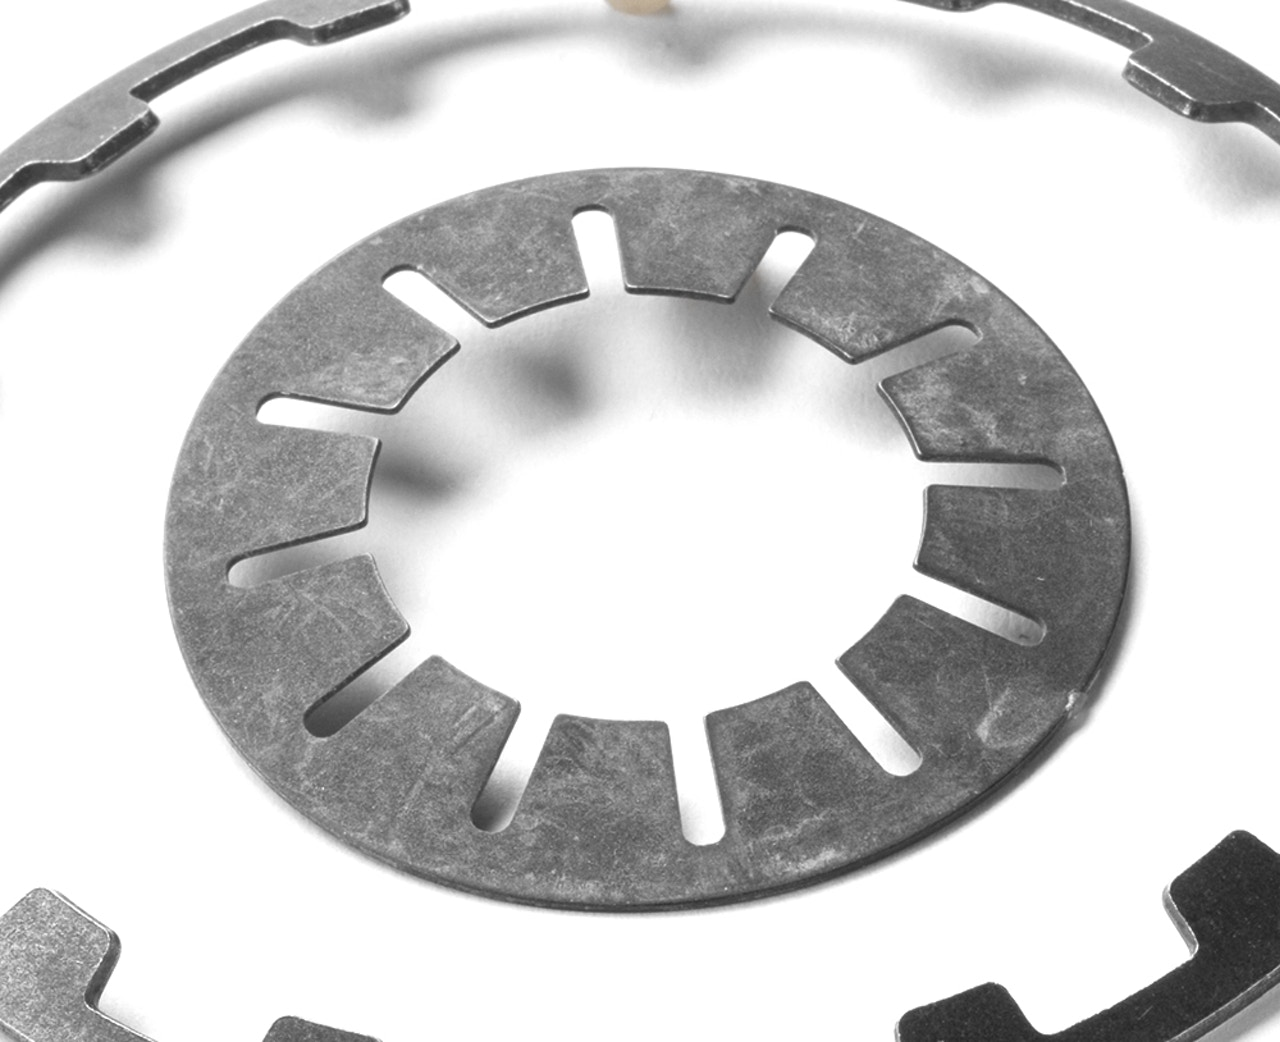 Precision components manufacturing - Slotted disc springs